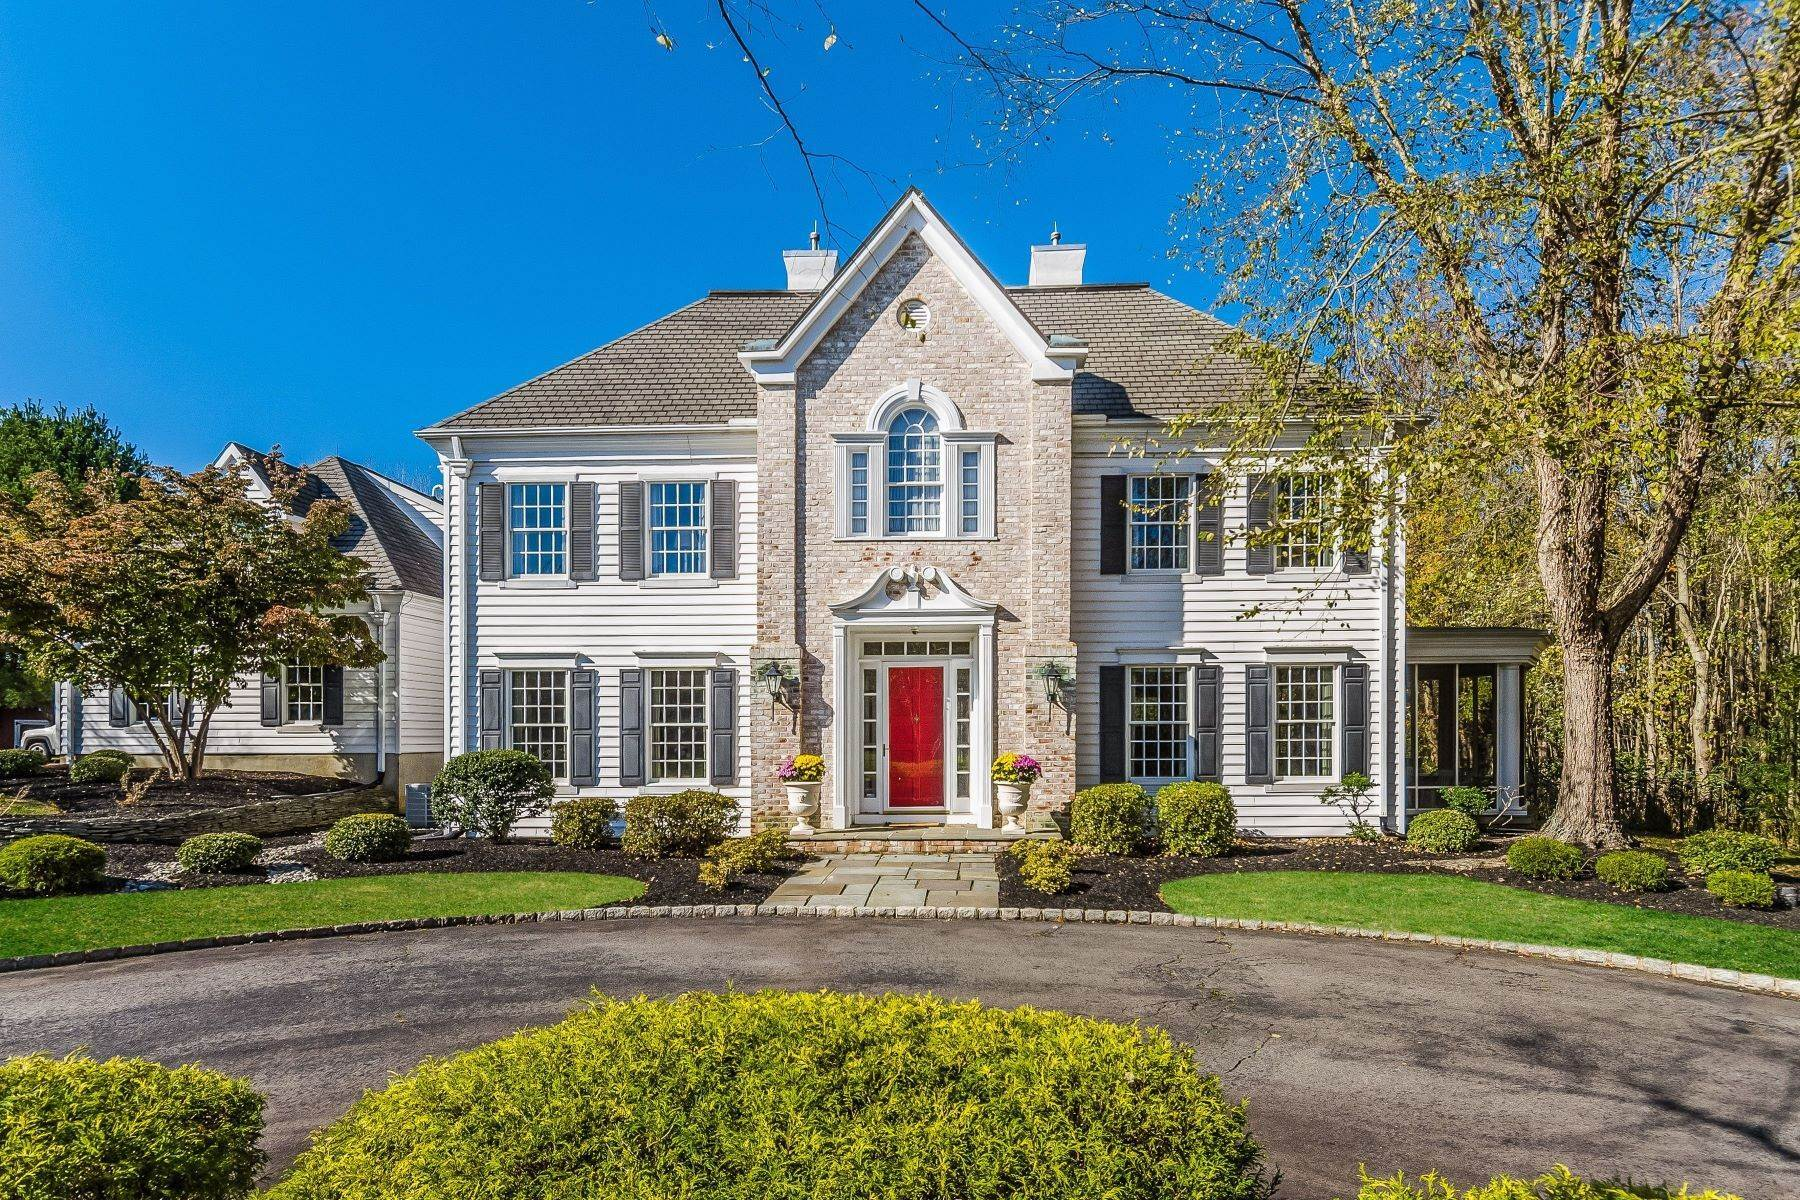 Single Family Homes for Sale at In Hamilton: Wooded, Grand, and Gracious 4 Hidden Hollow Drive Hamilton, New Jersey 08620 United States